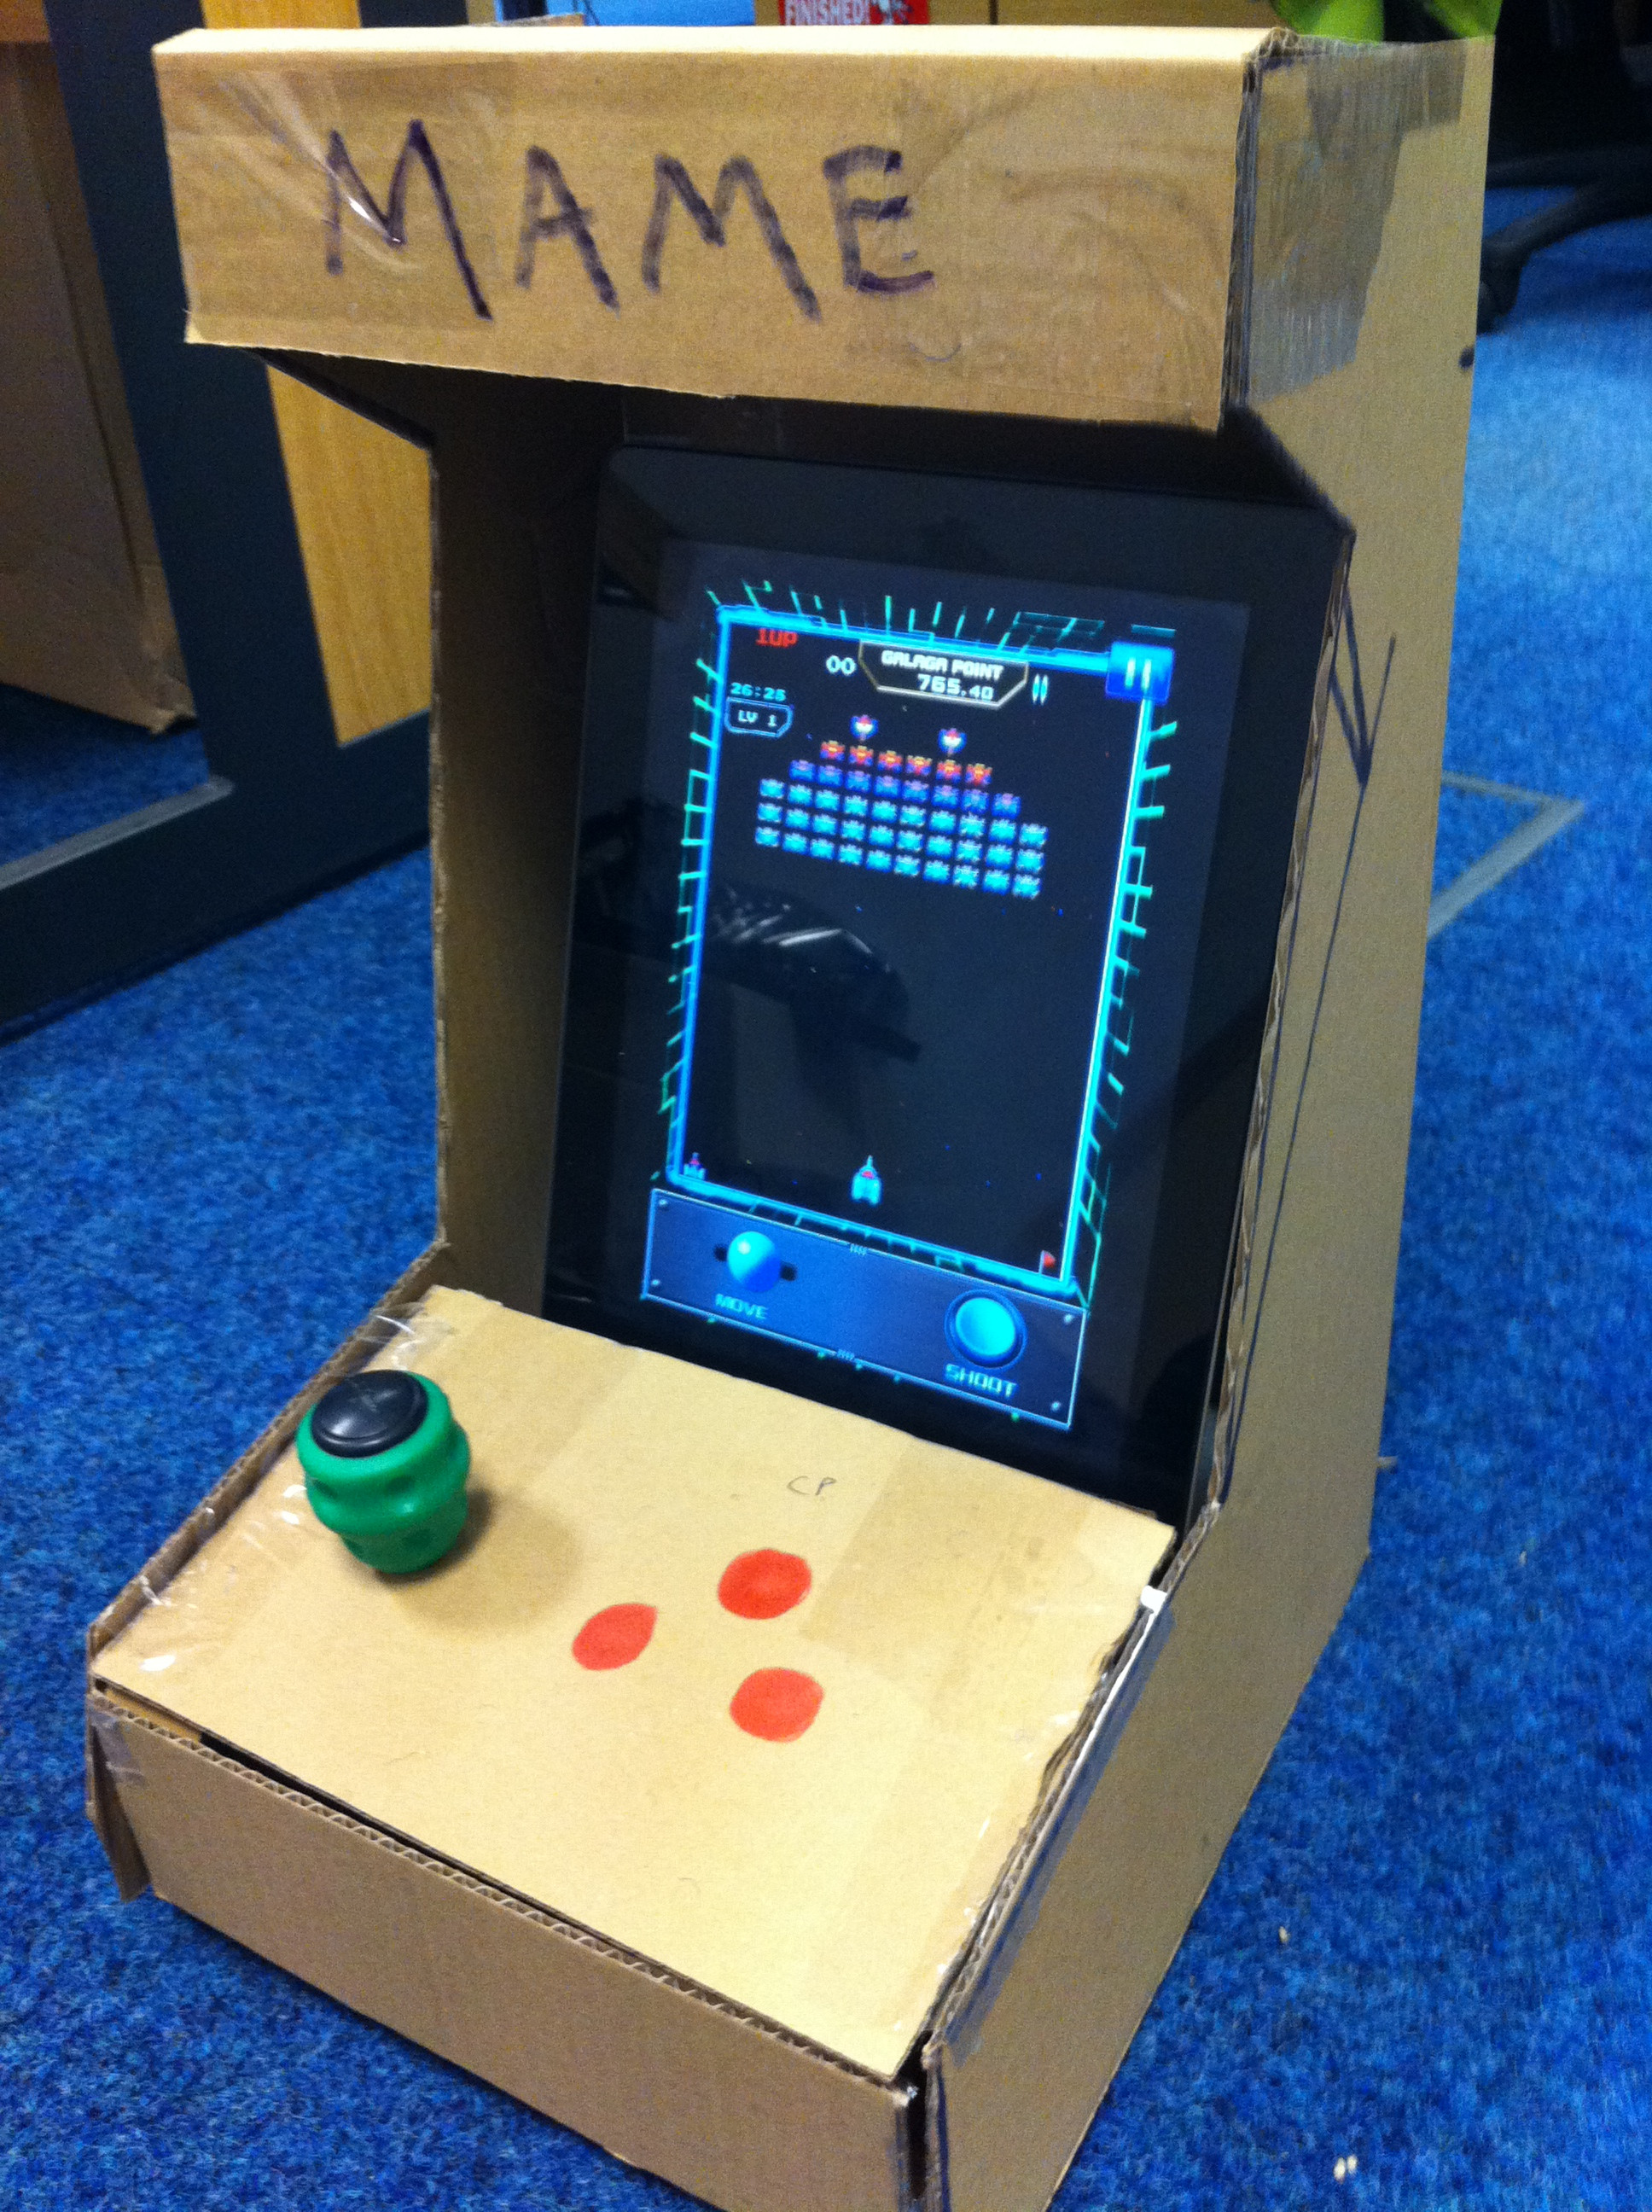 Best ideas about Mame Arcade Cabinet . Save or Pin Mini Bartop Arcade Machine StiGGy s Blog Now.